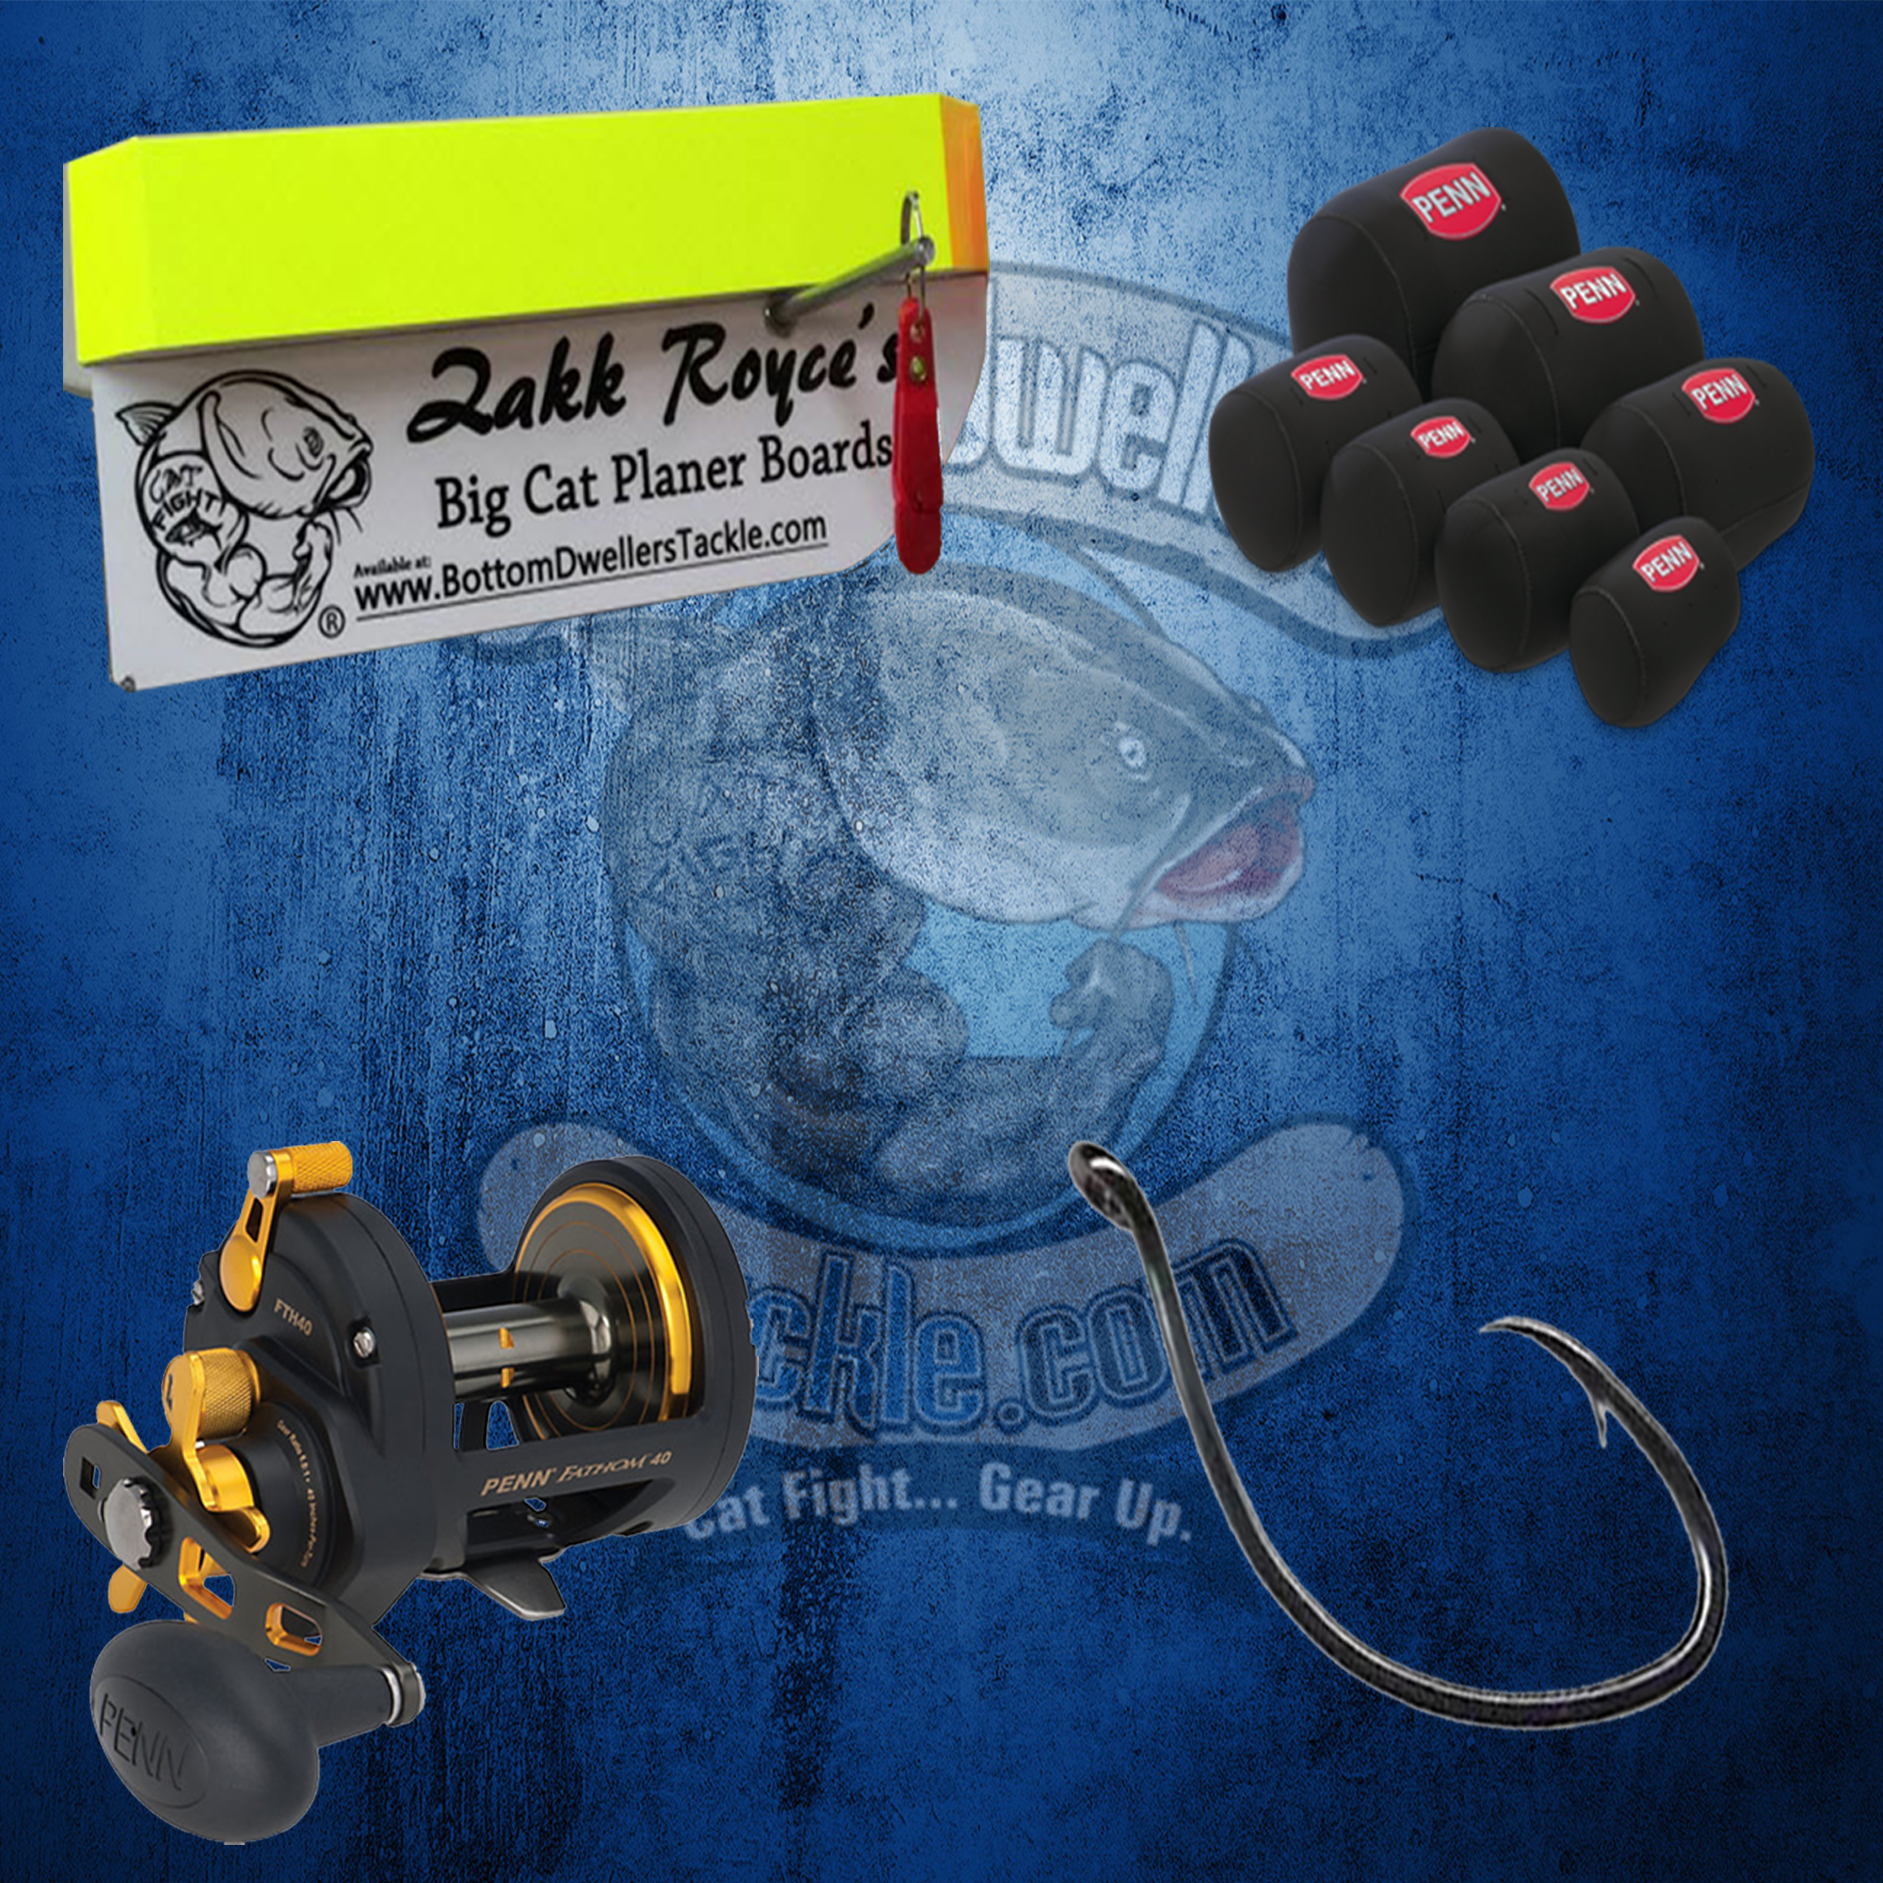 Catfish Tackle Shop The Best Trophy Catfish Gear For Less Bottom